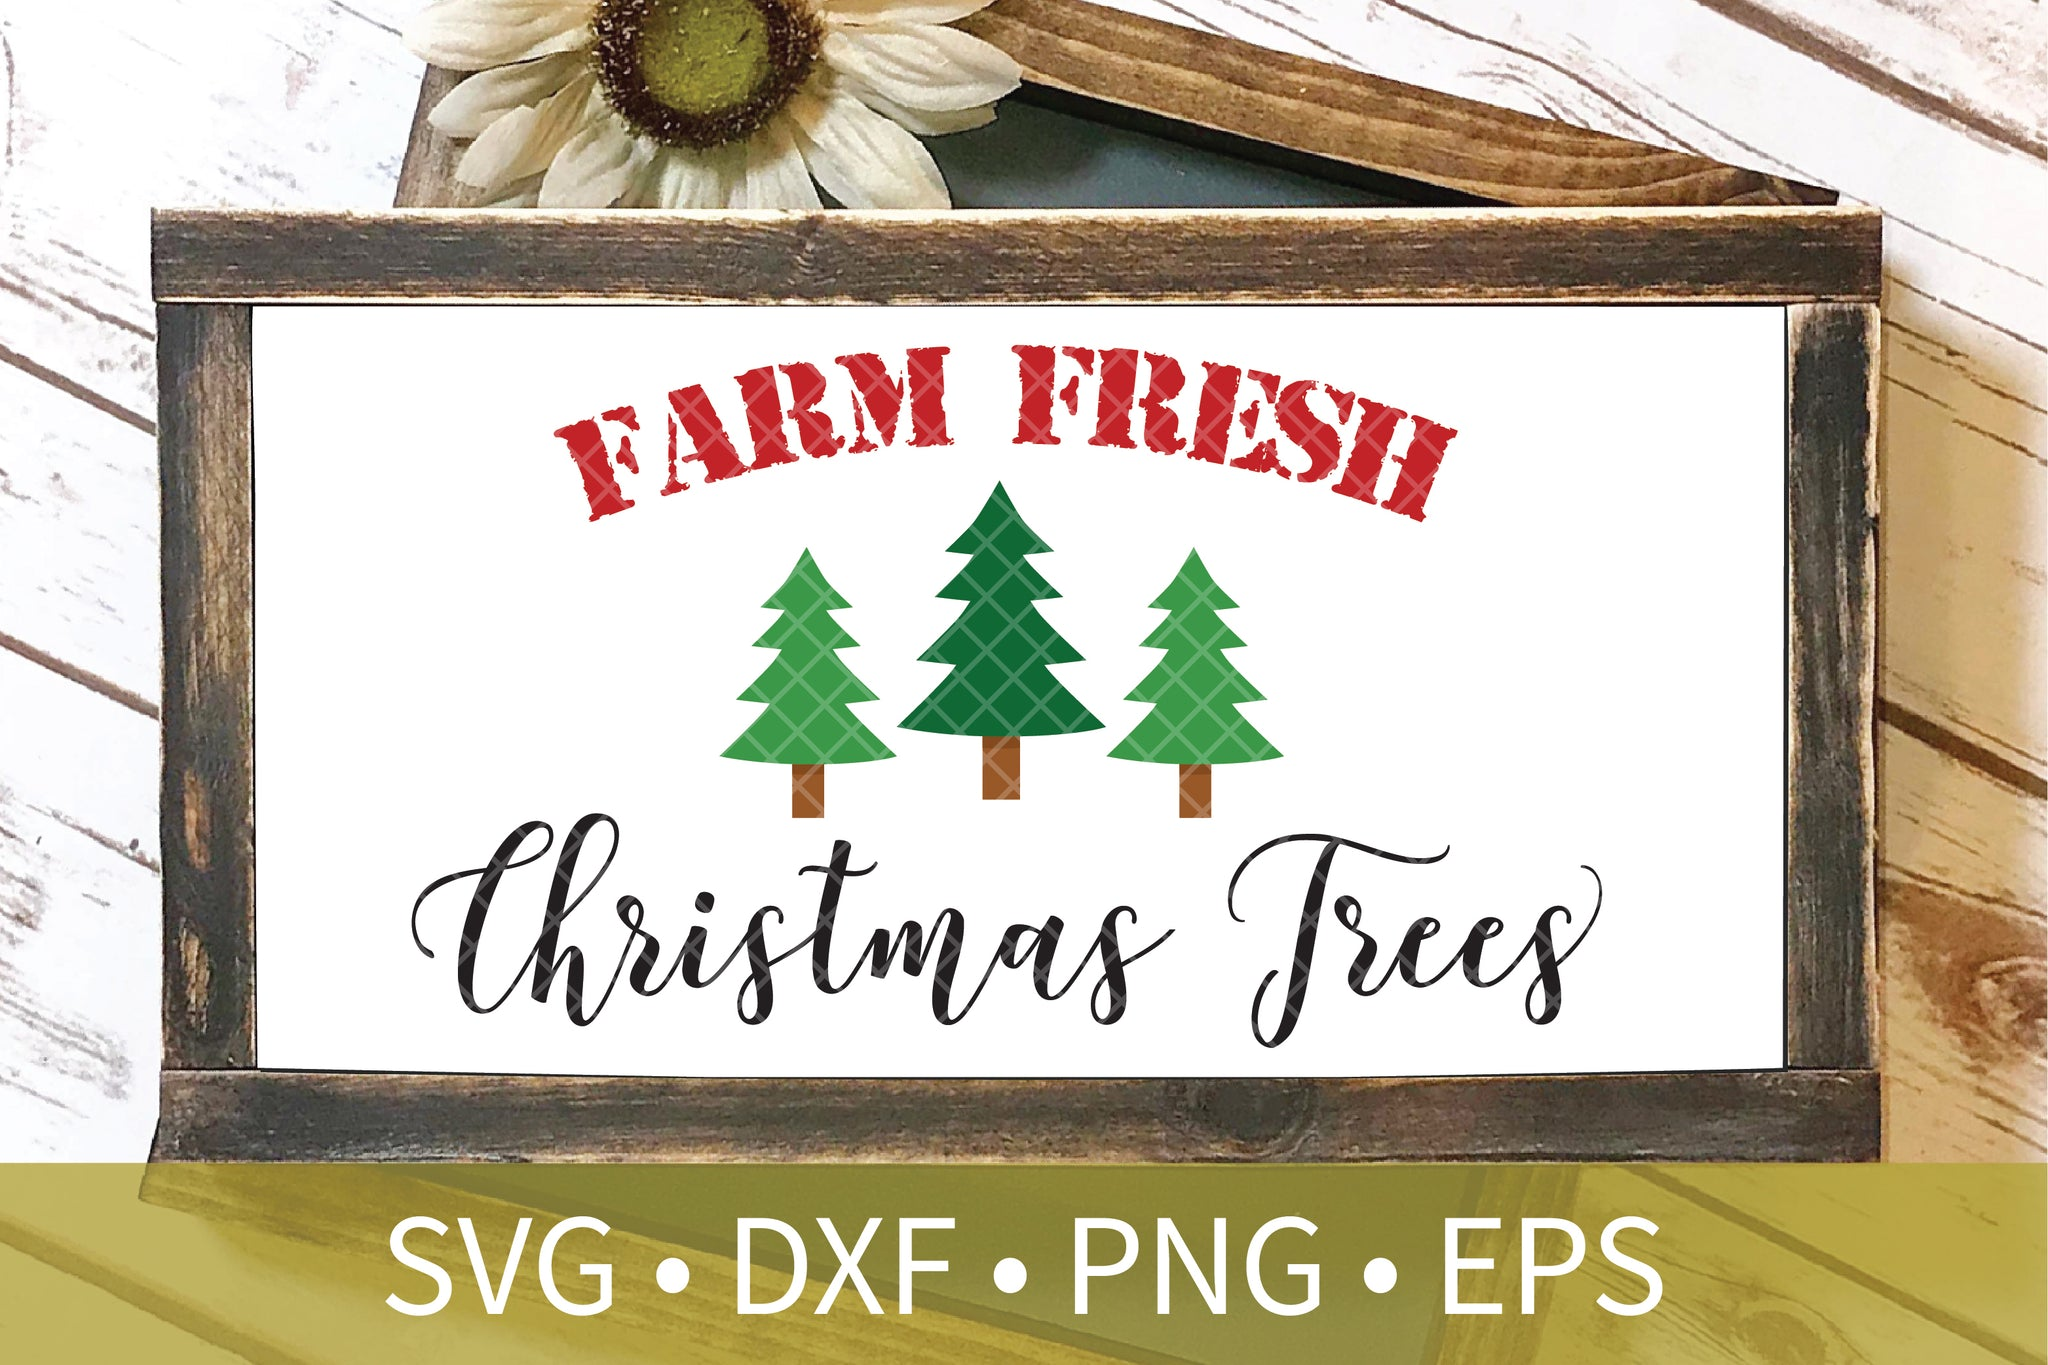 Farm Fresh Christmas Tree SVG